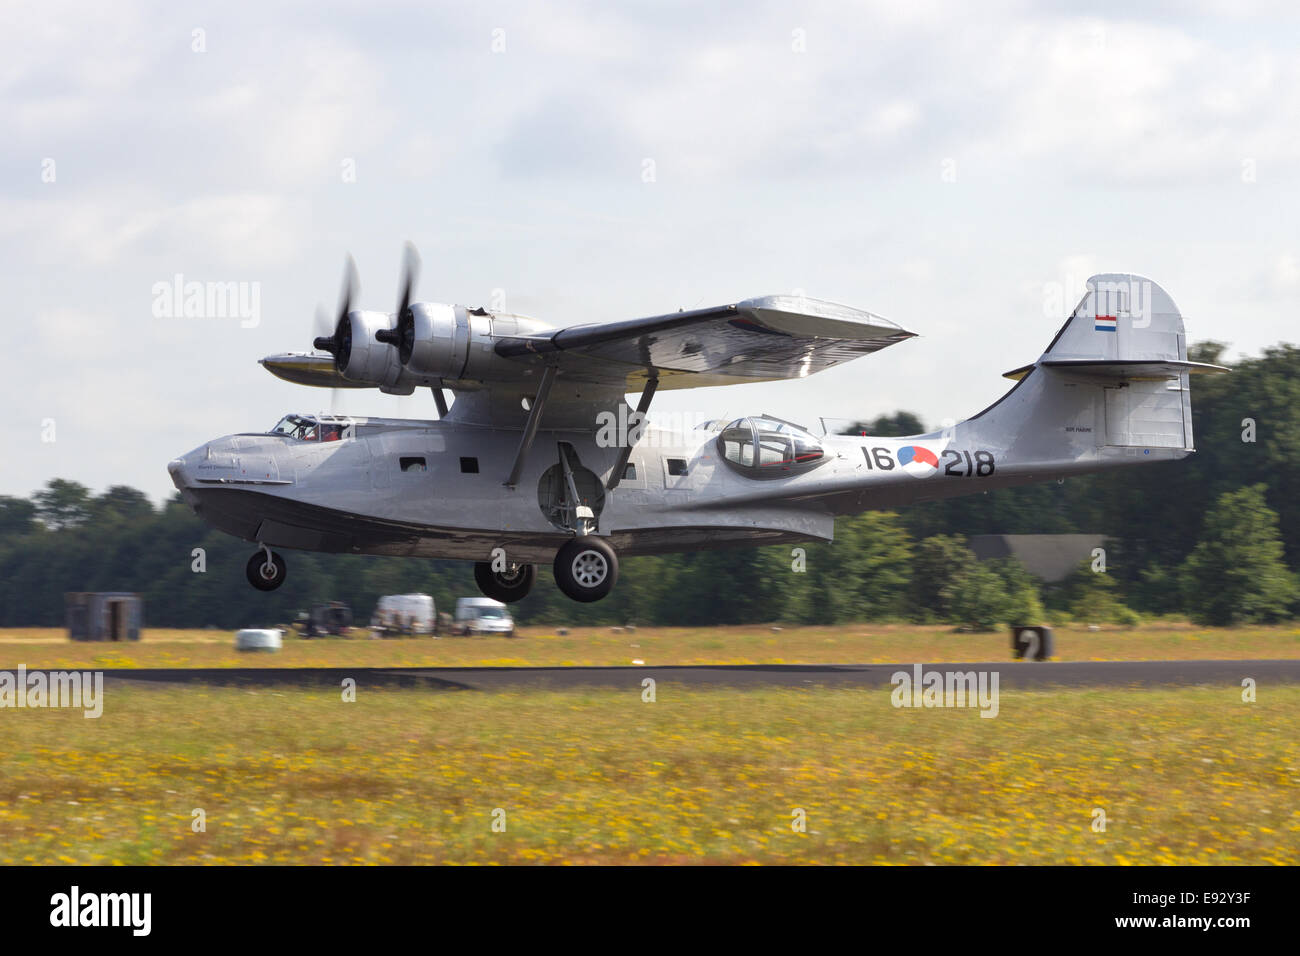 Consolidated PBY Catalina in Dutch Navy colors take off. - Stock Image